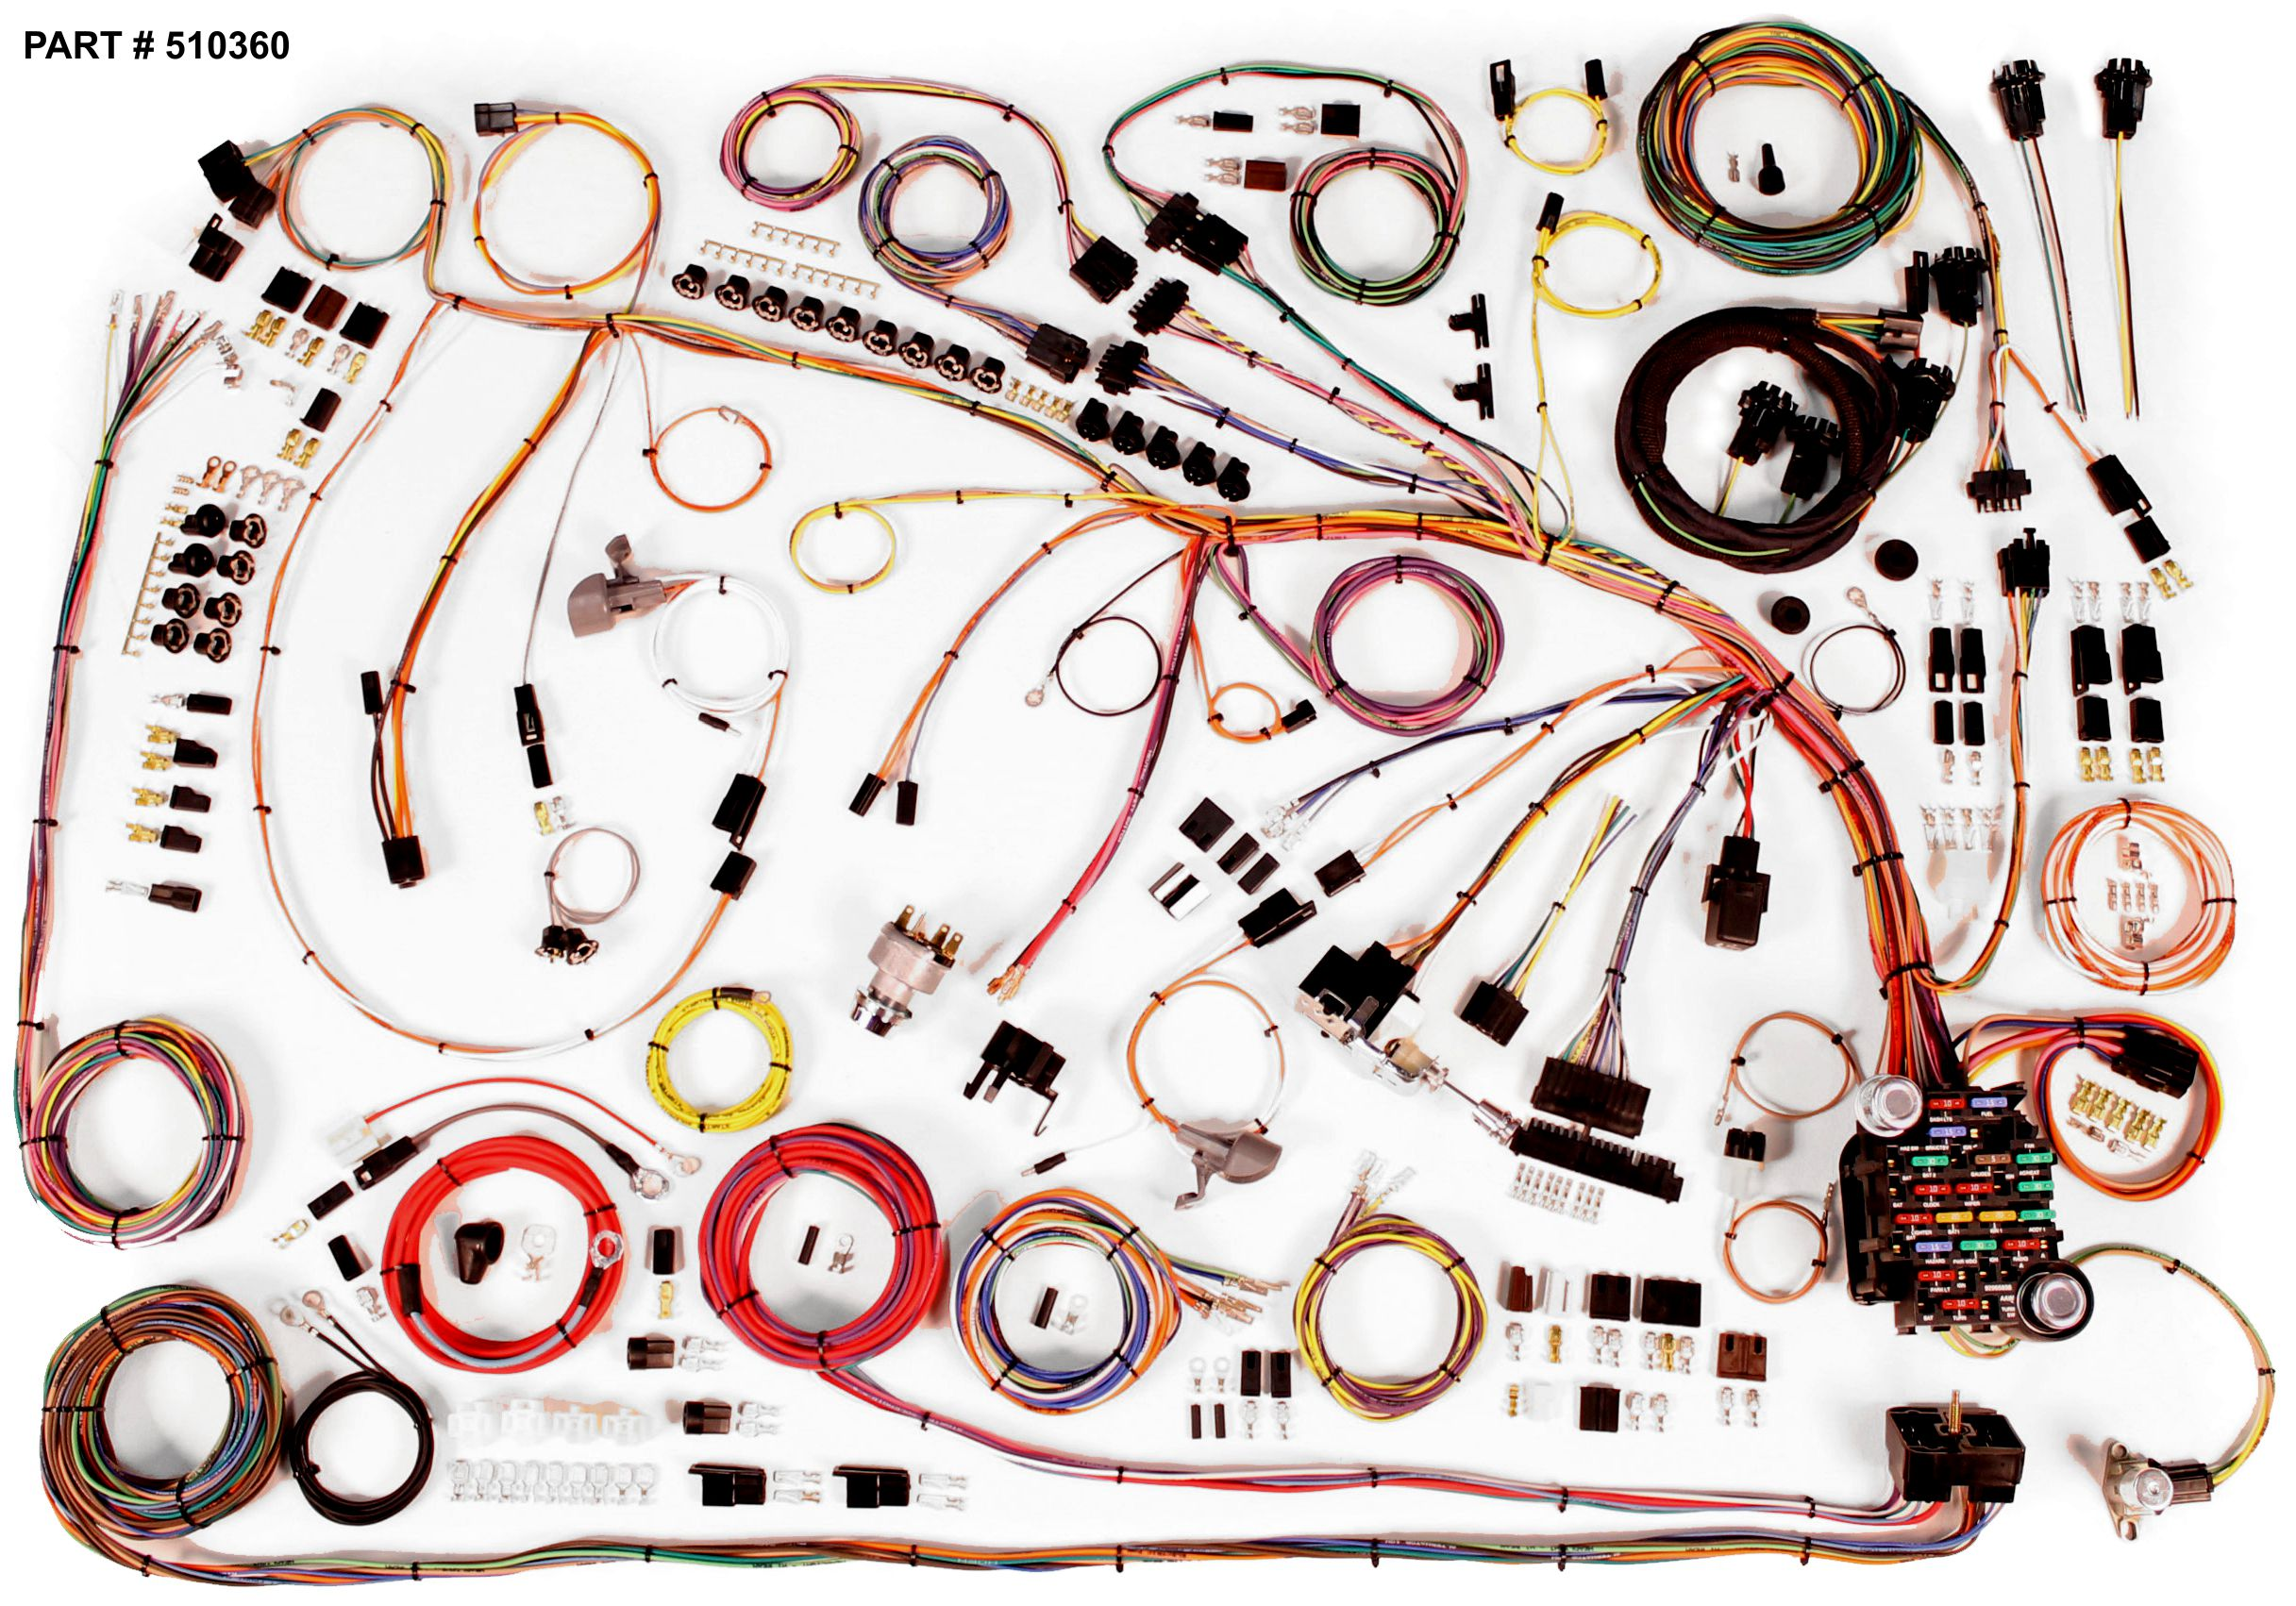 1965_510360 1965 chevrolet impala restomod wiring system 65 chevy wiring harness at suagrazia.org